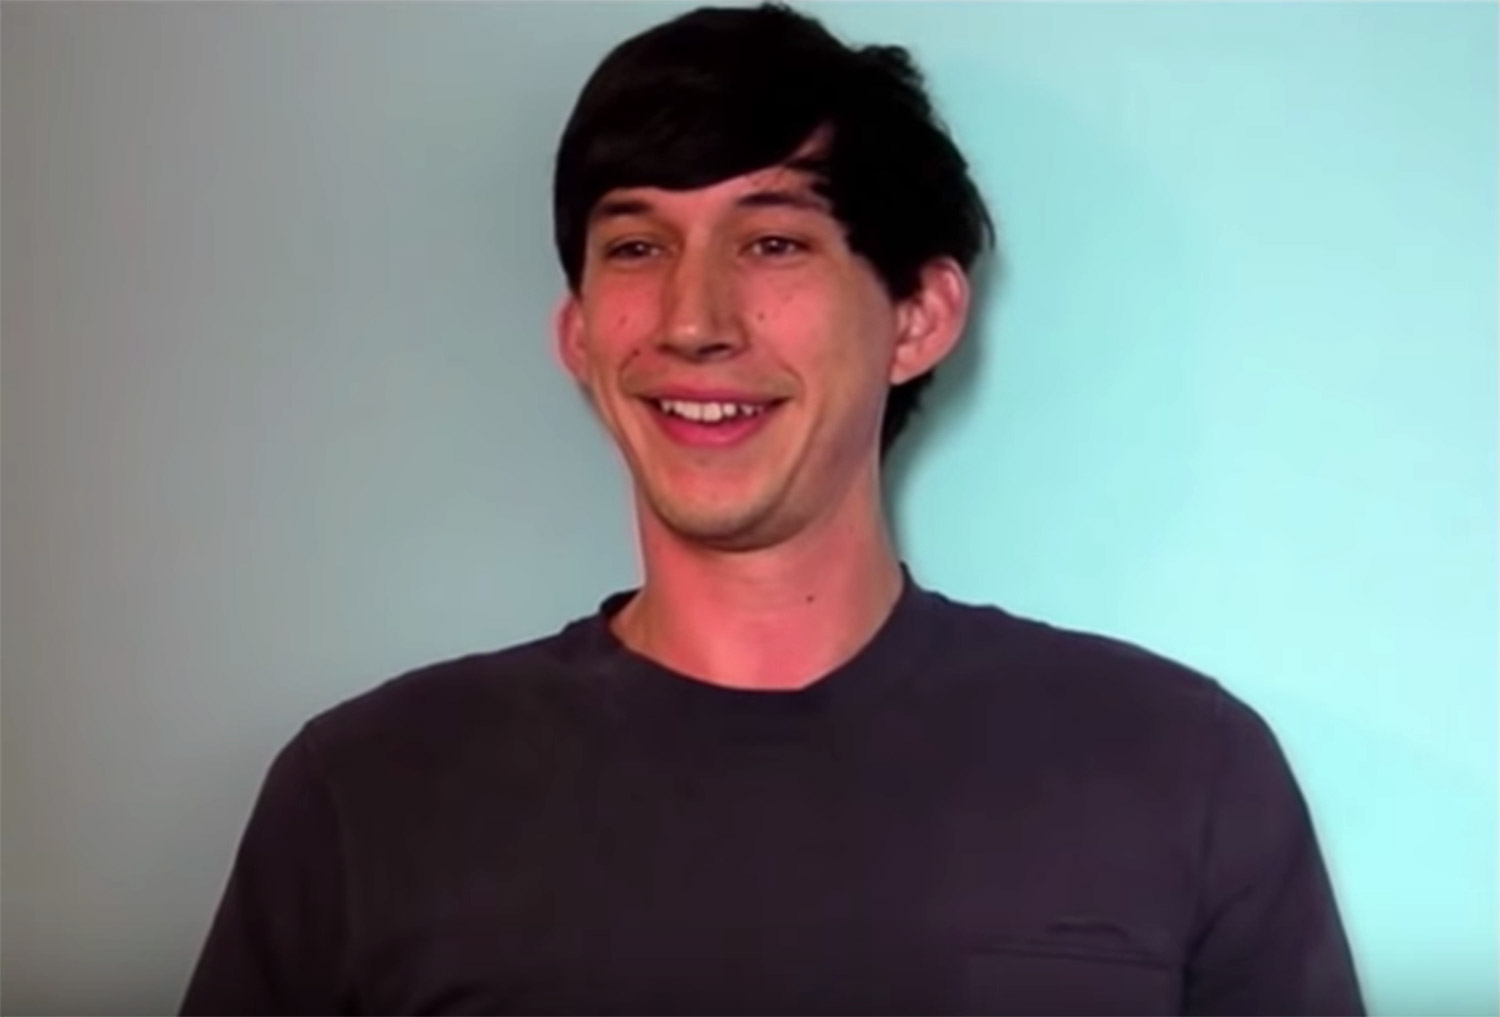 Adam Driver's screentest for Girls